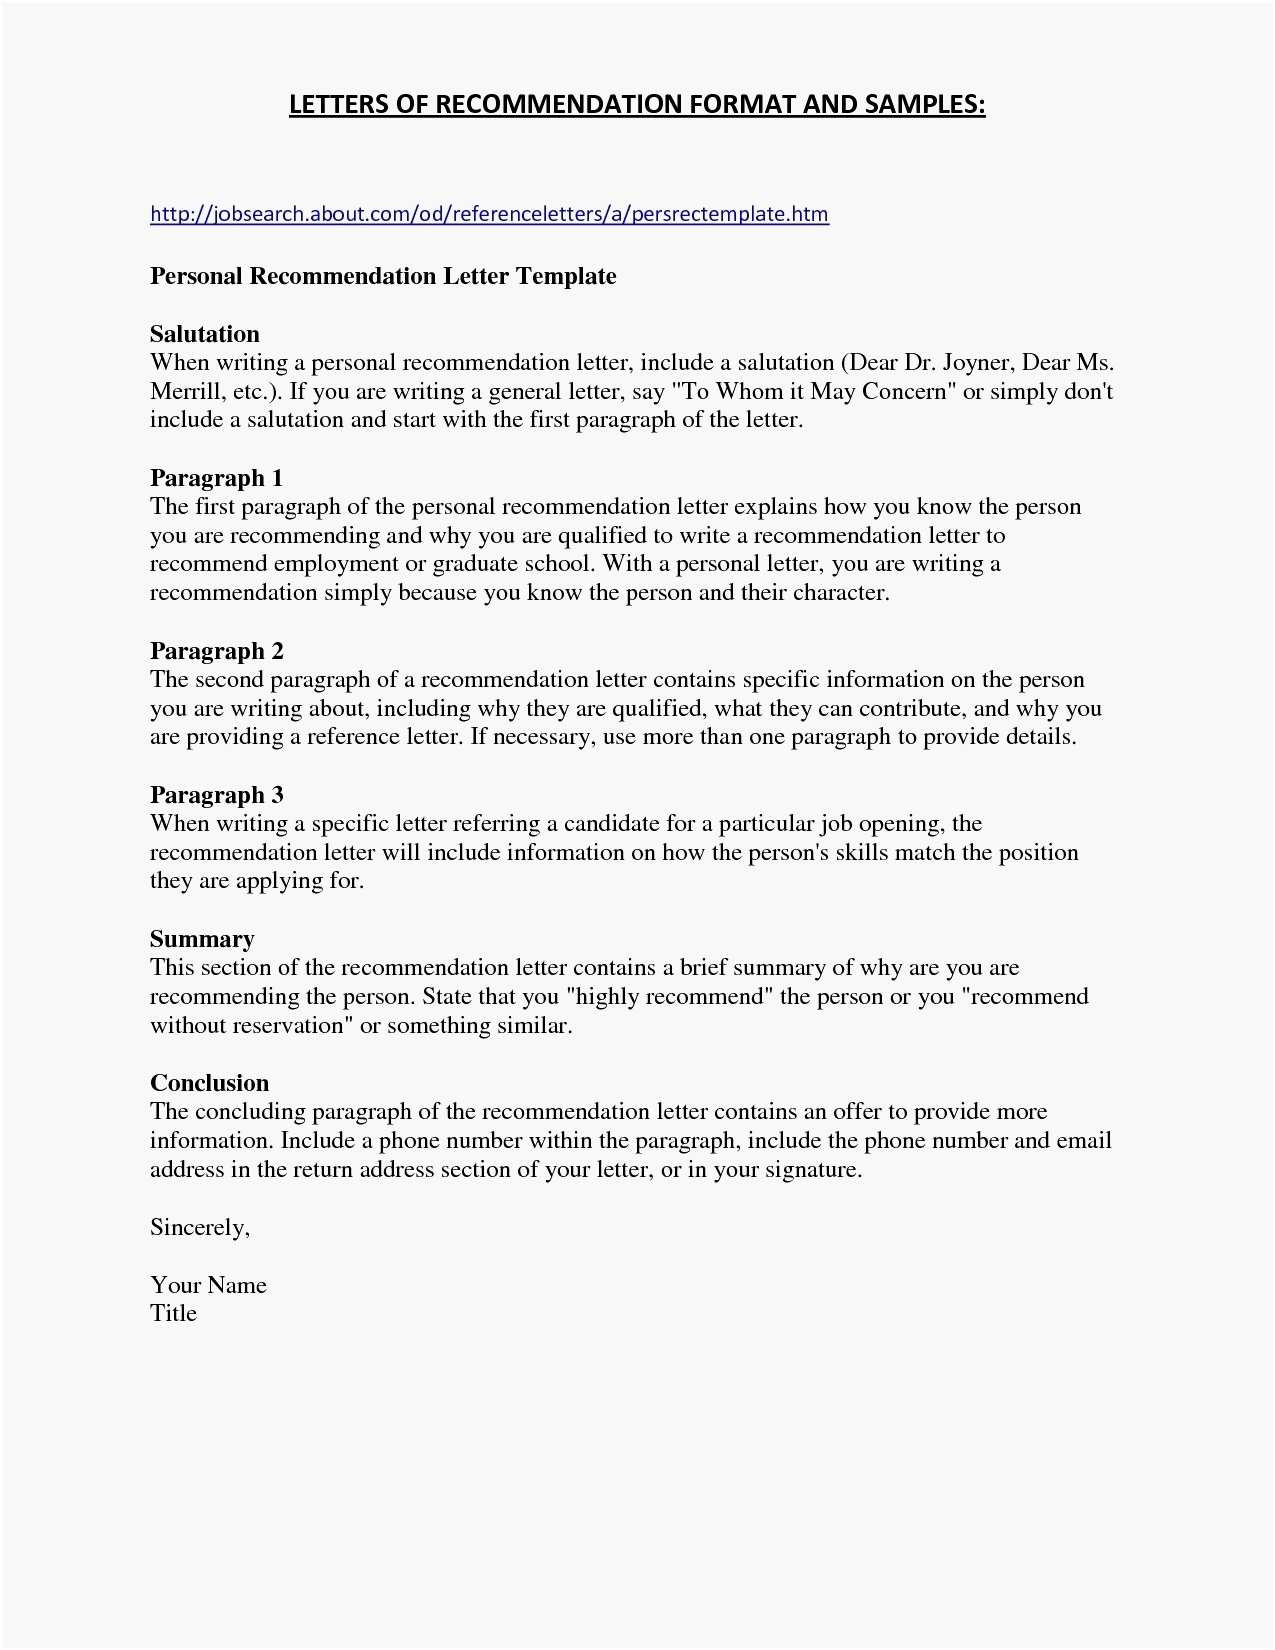 Letter to Hoa Template Samples | Letter Template Collection